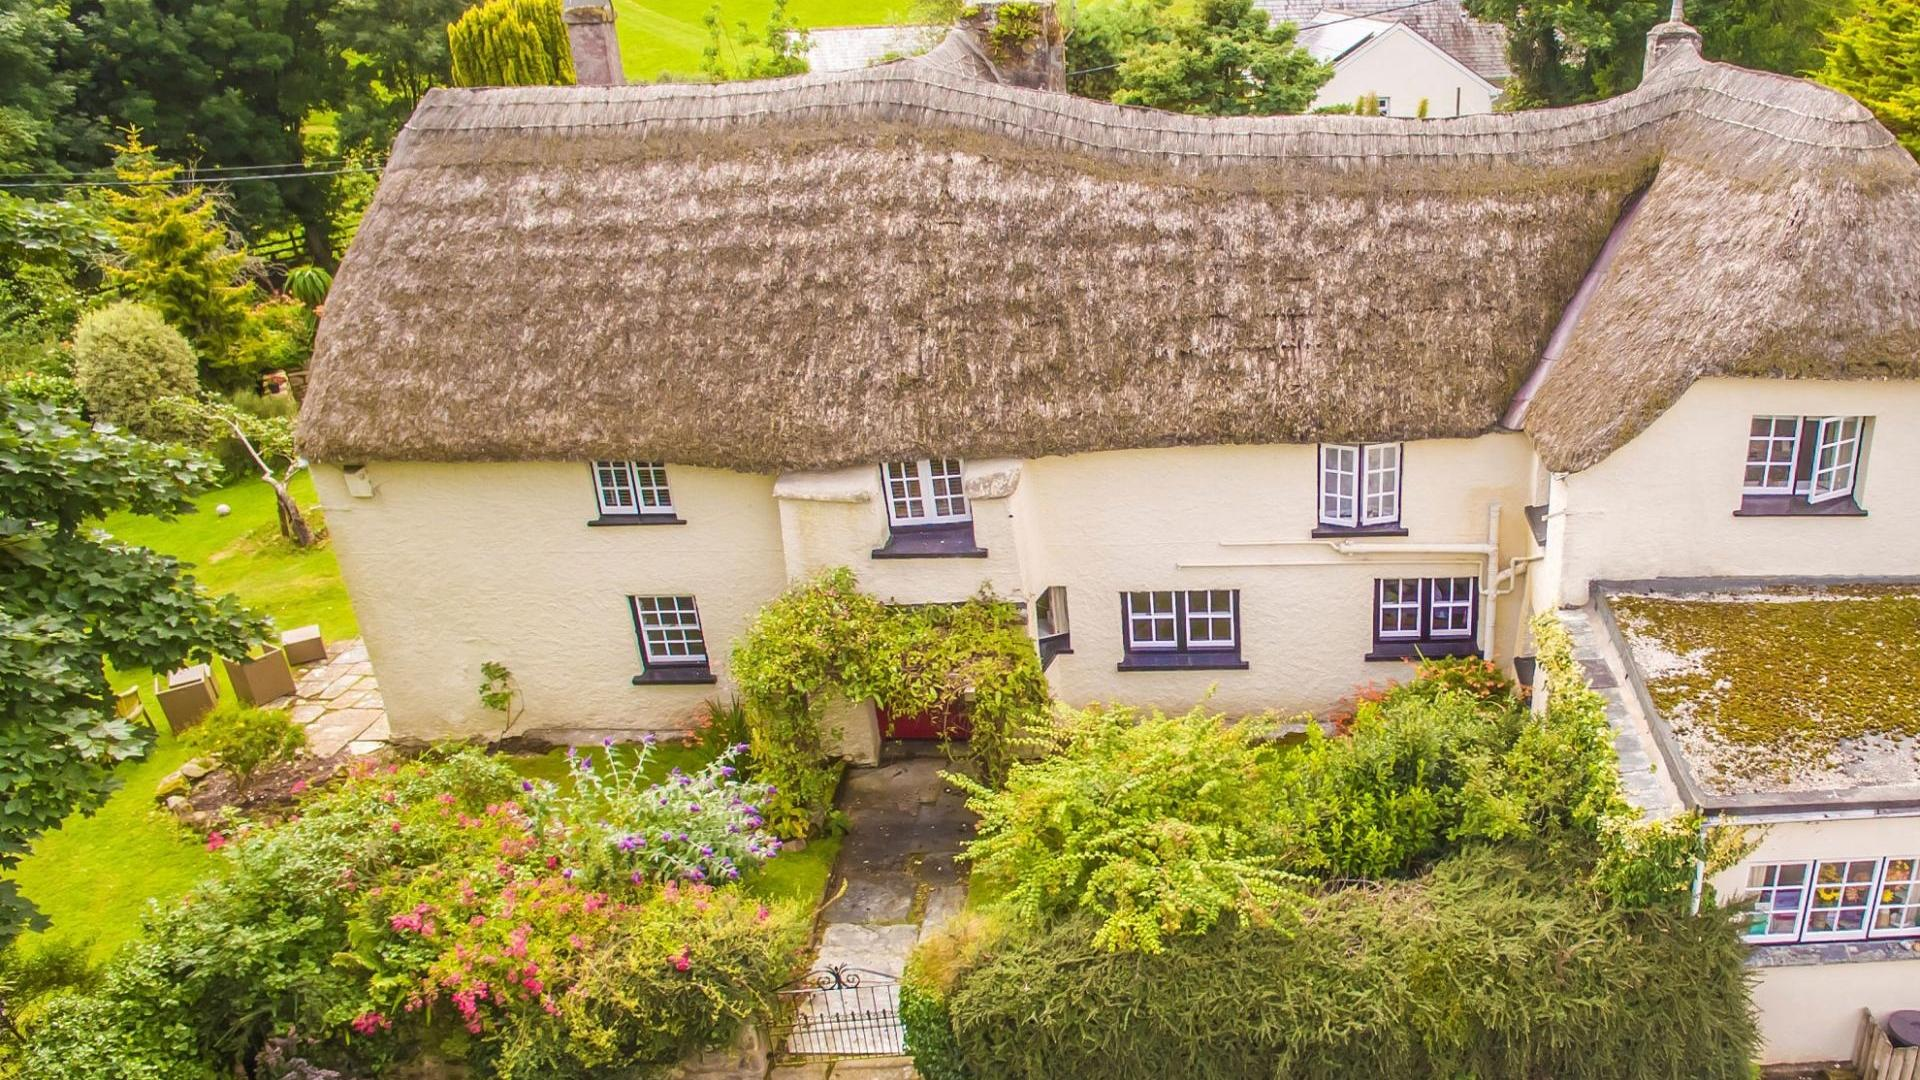 6 bedroom child-friendly farmhouse in cornwall - PSFH